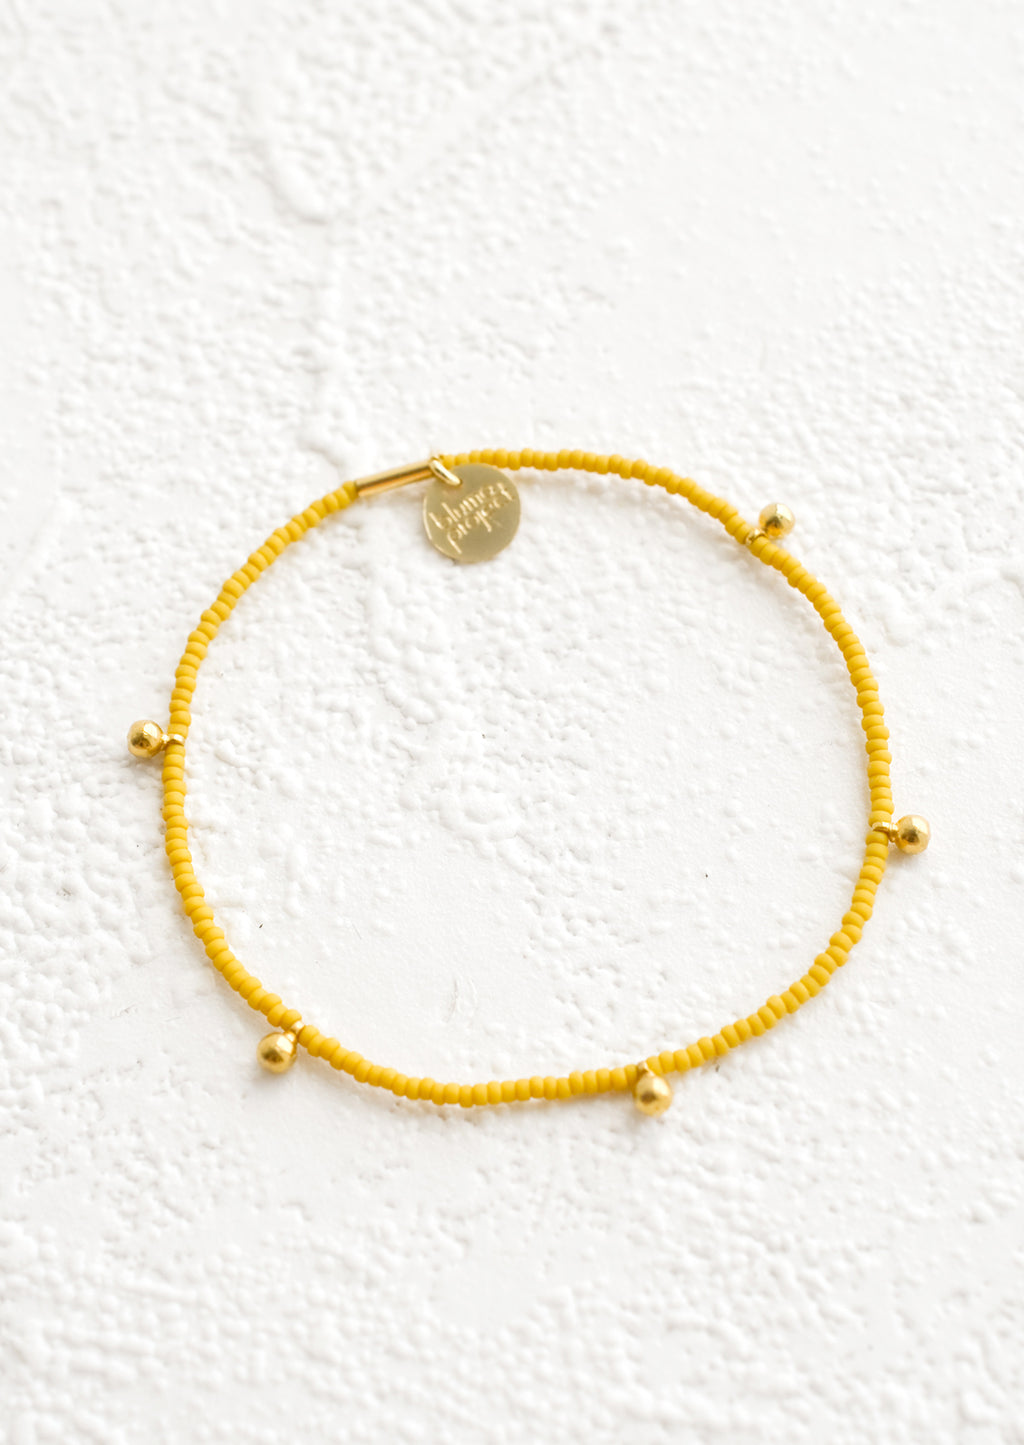 Mustard: Bracelet made from mustard colored glass seed beads with brass ball accent charms and logo tag